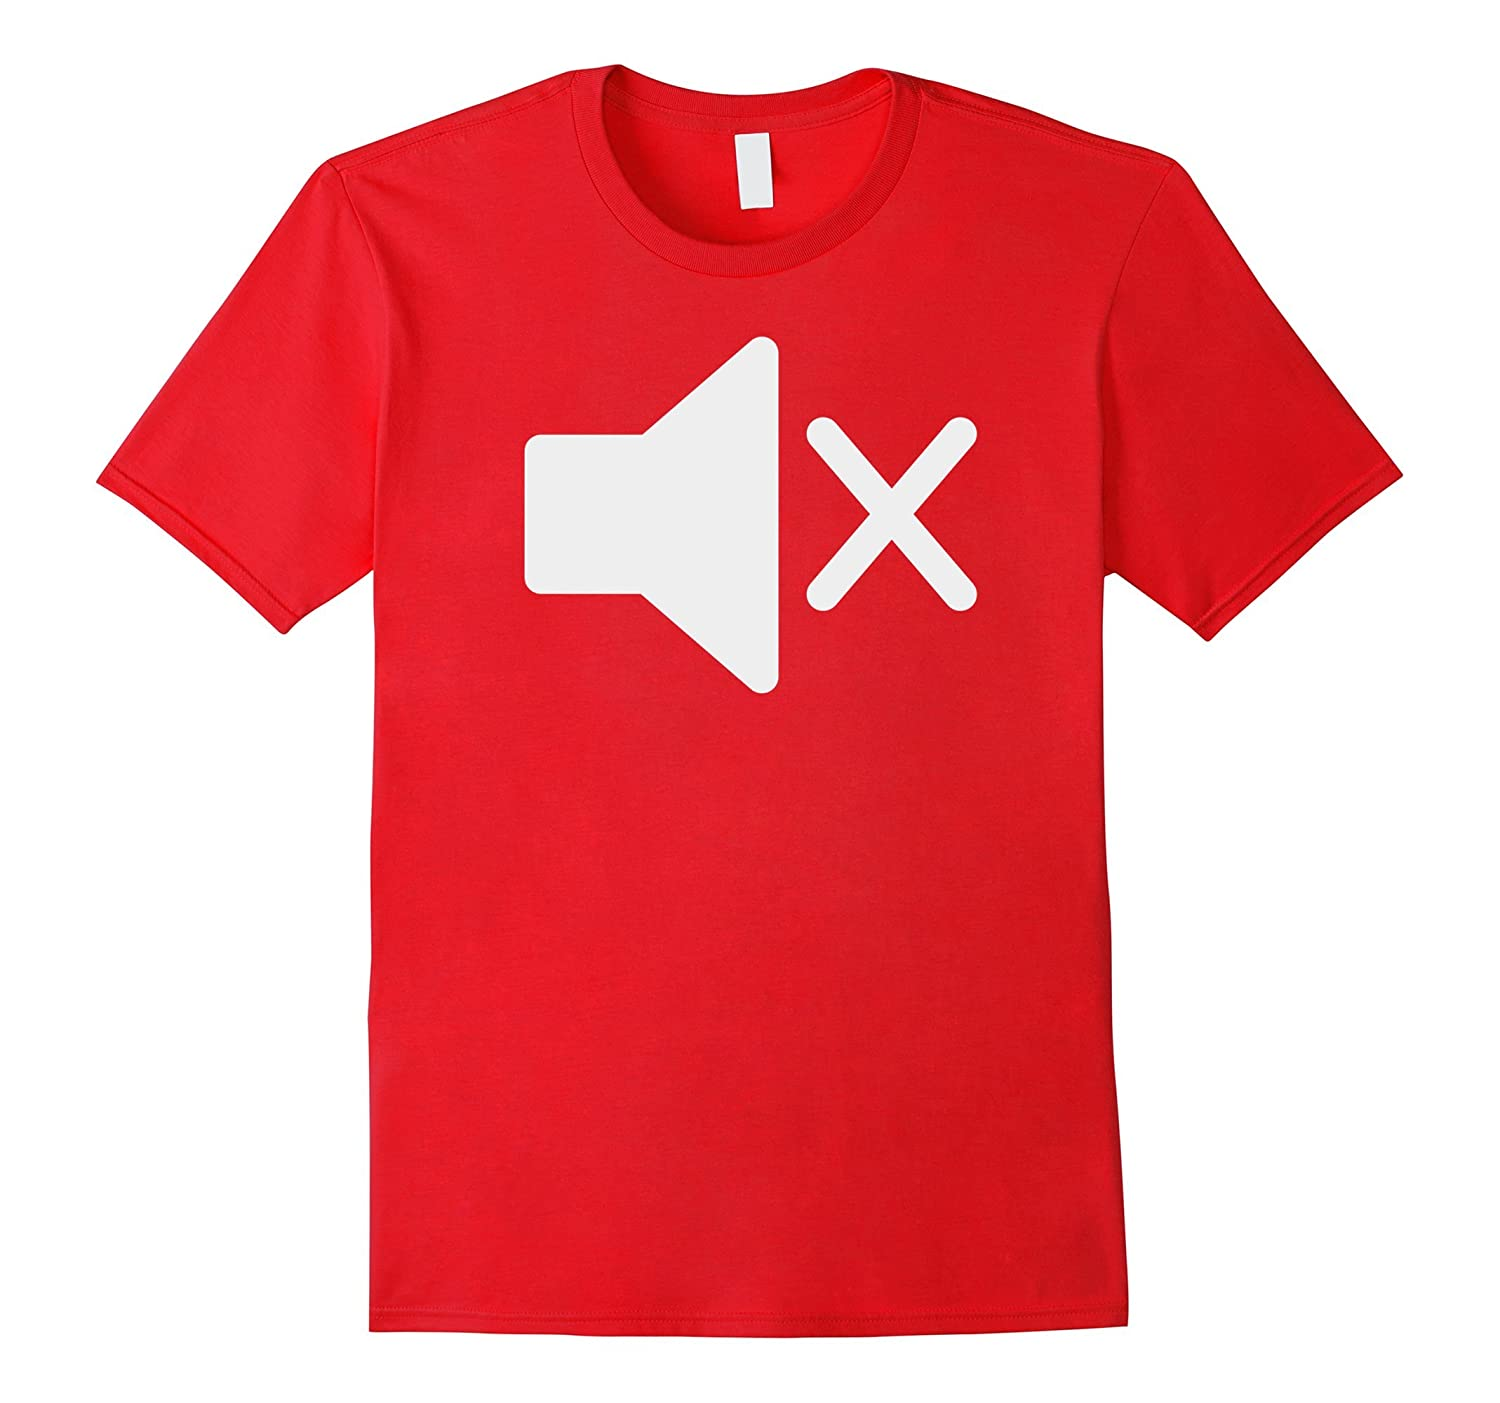 Mute Symbol Tee - Funny Tee for Deaf Mute or Introverts-FL